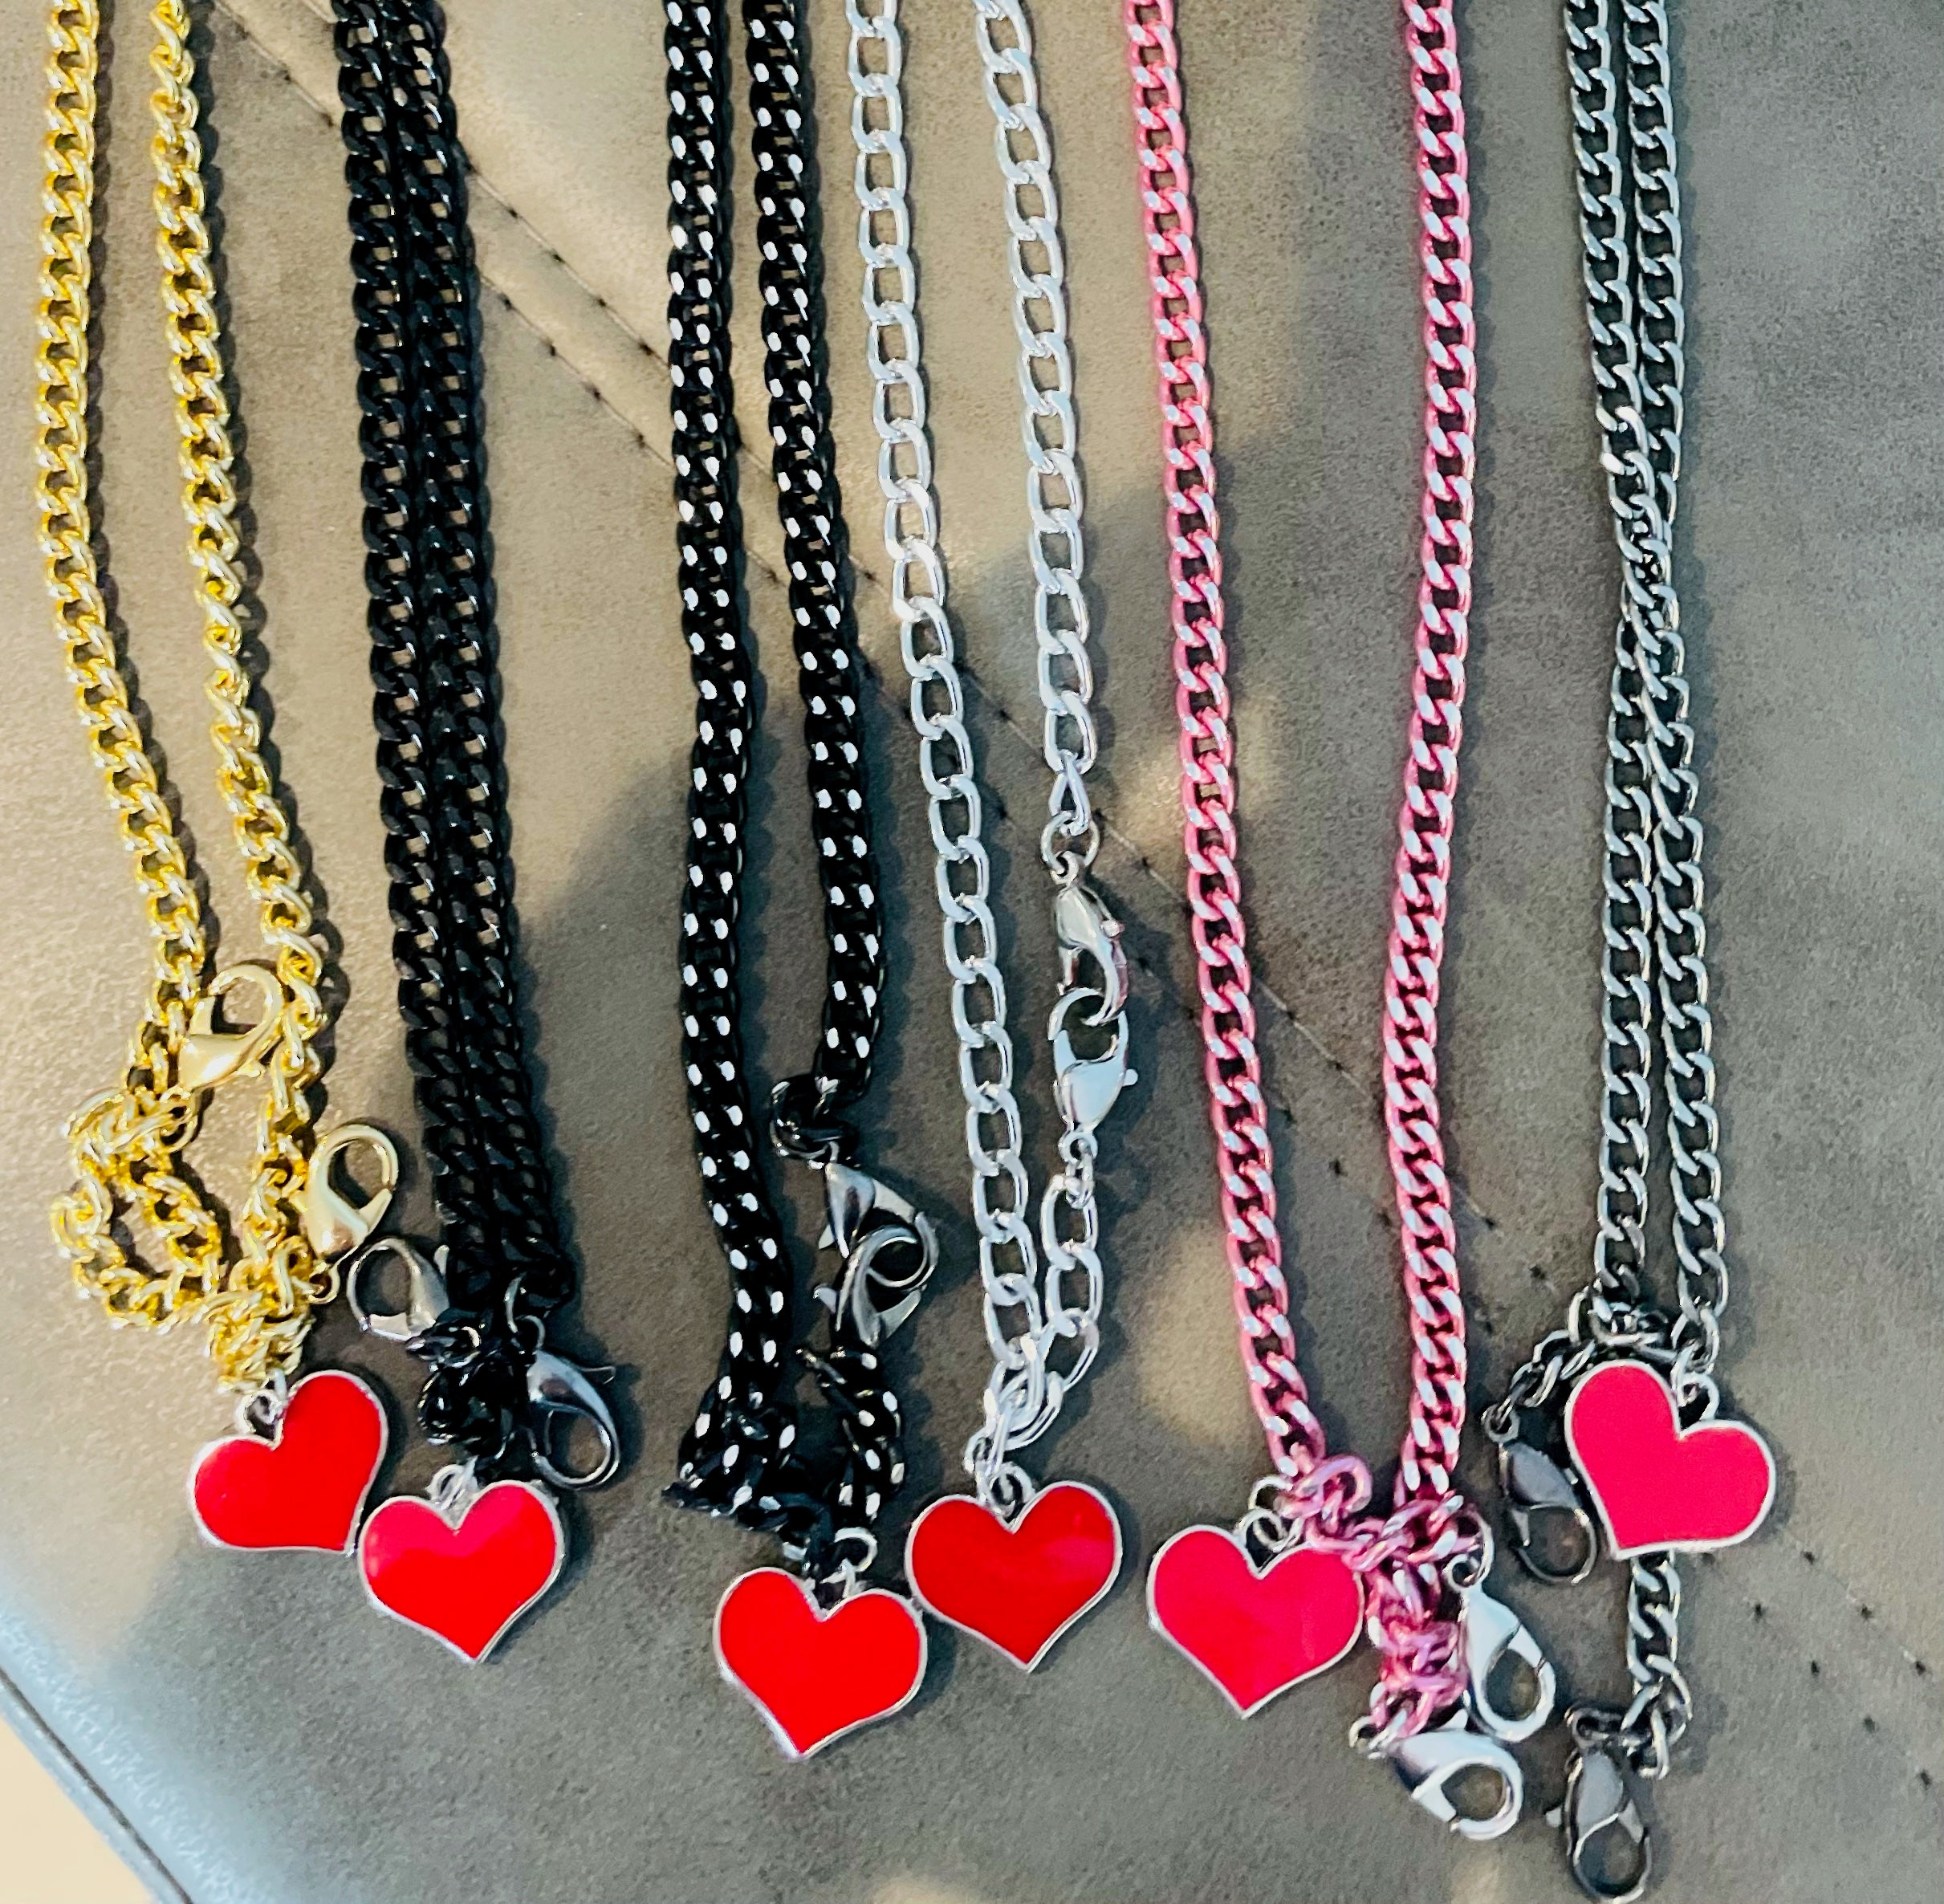 HEART & SOUL BKEEPER MASK CHAINS